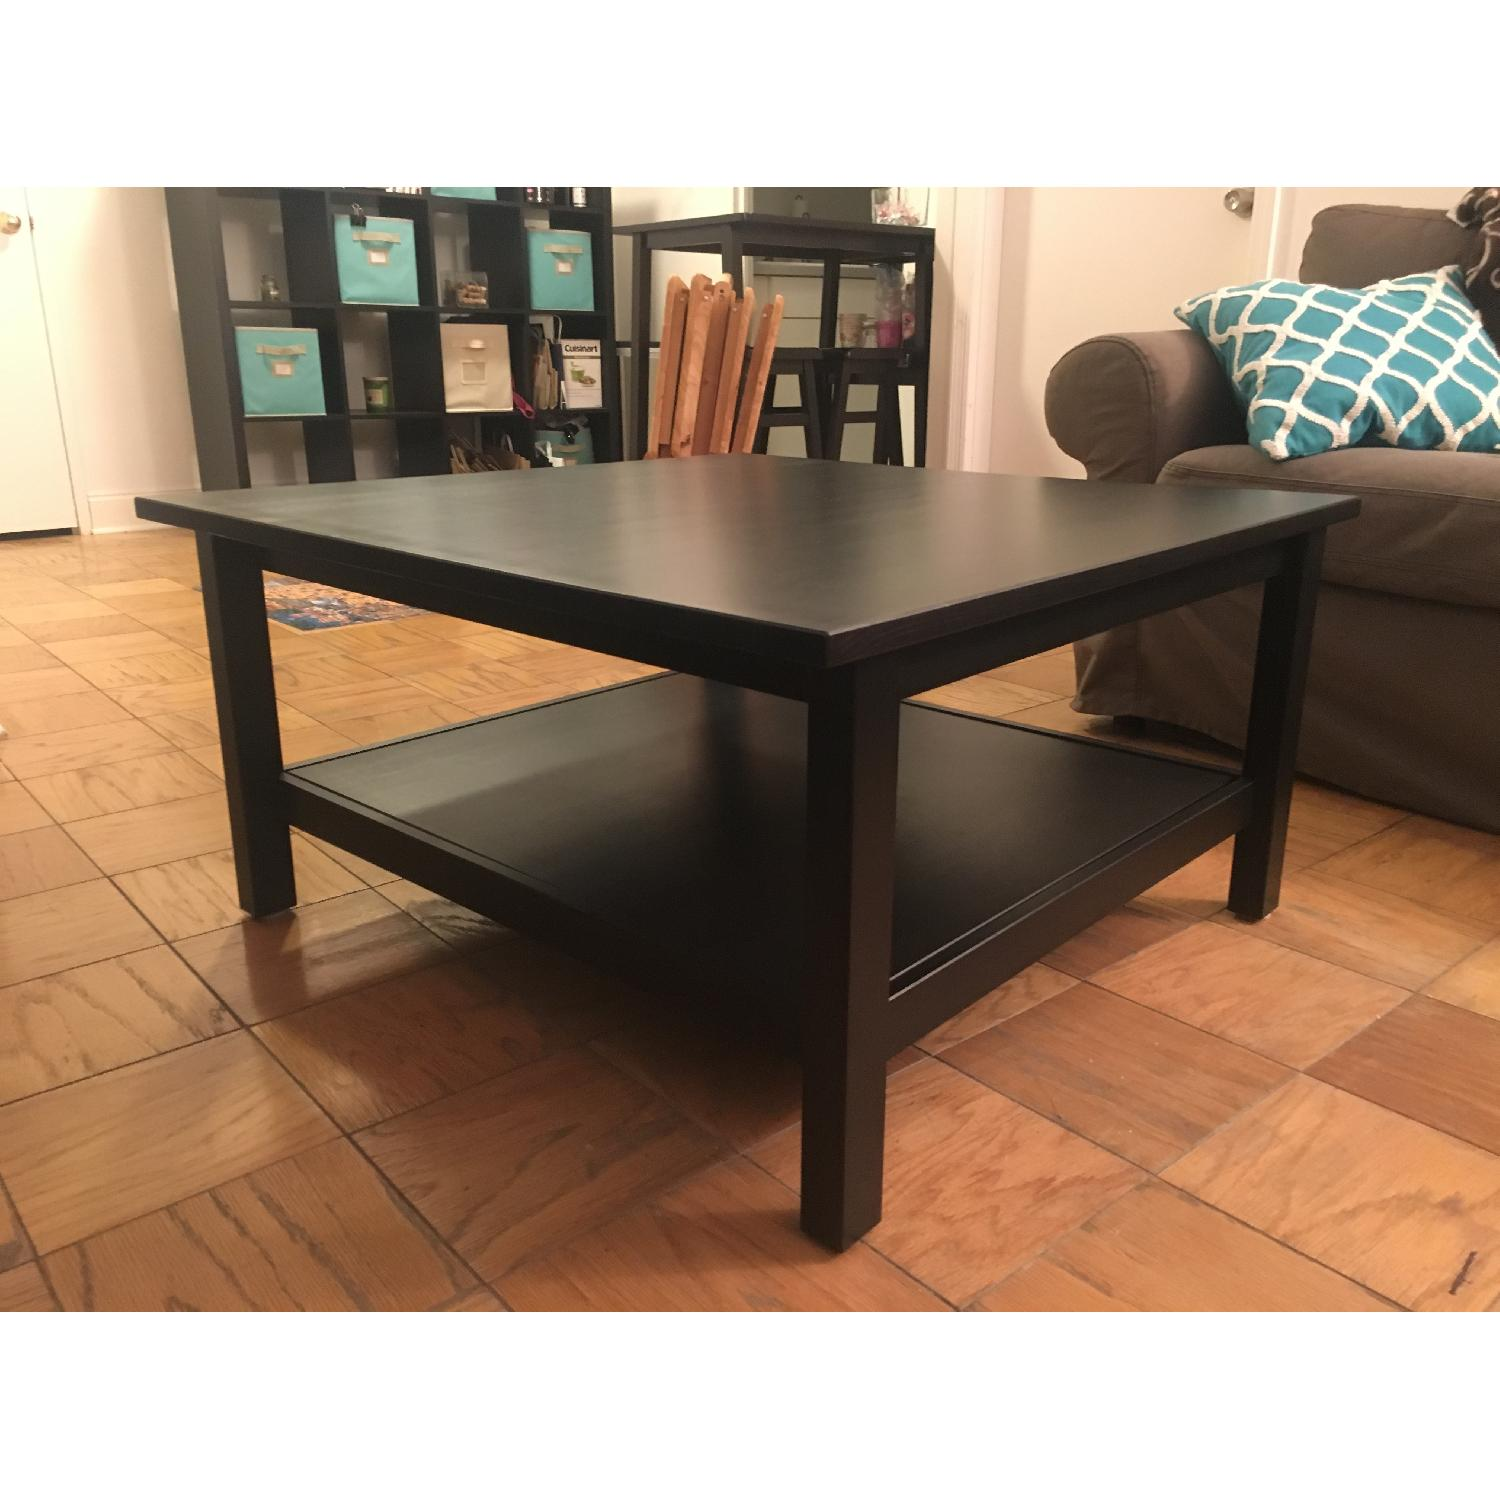 Ikea Hemnes Coffee Table AptDeco